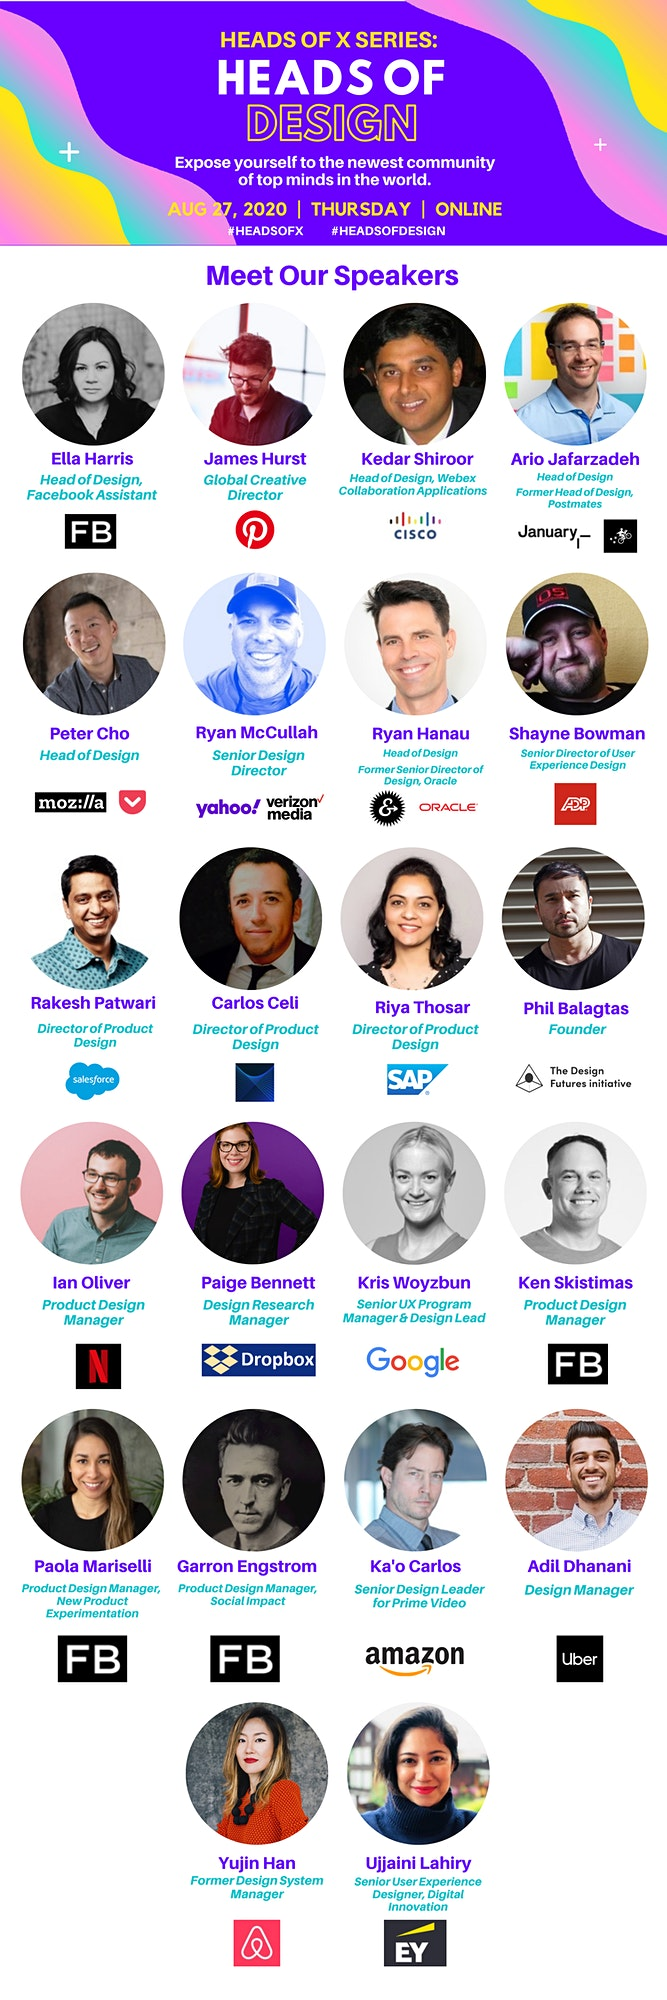 Heads Of X Series: Heads of Design Conference image